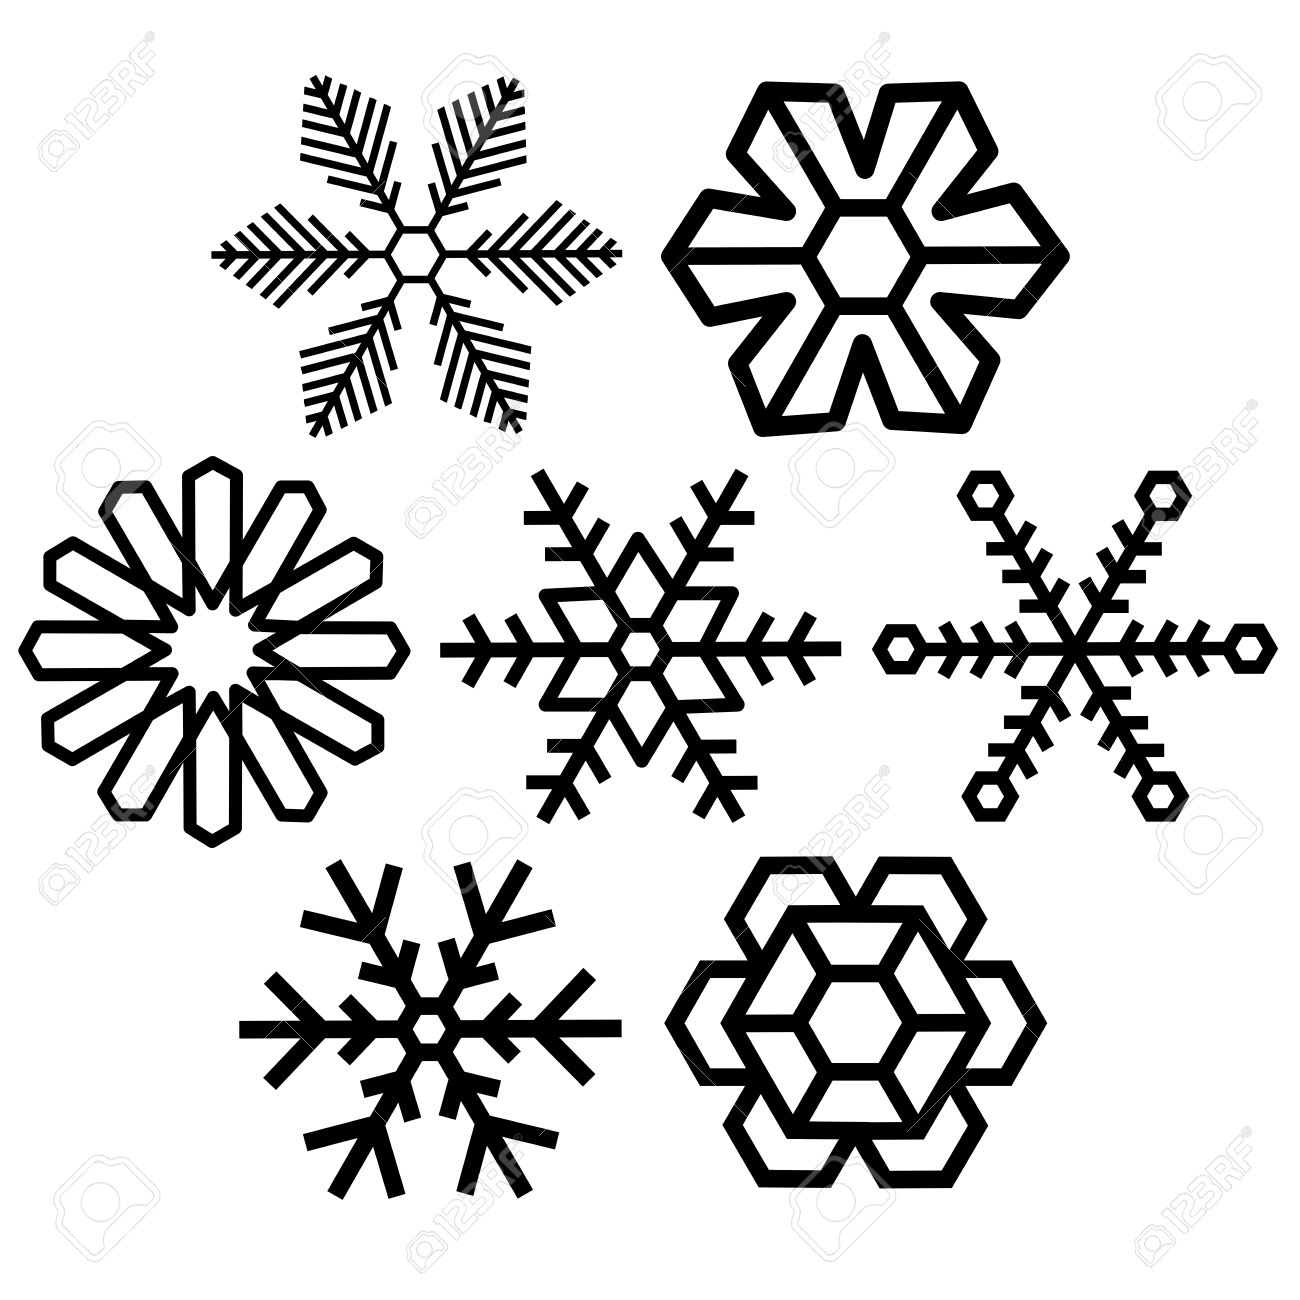 Crystal clipart black and white Snow Snow collection clipart Crystal